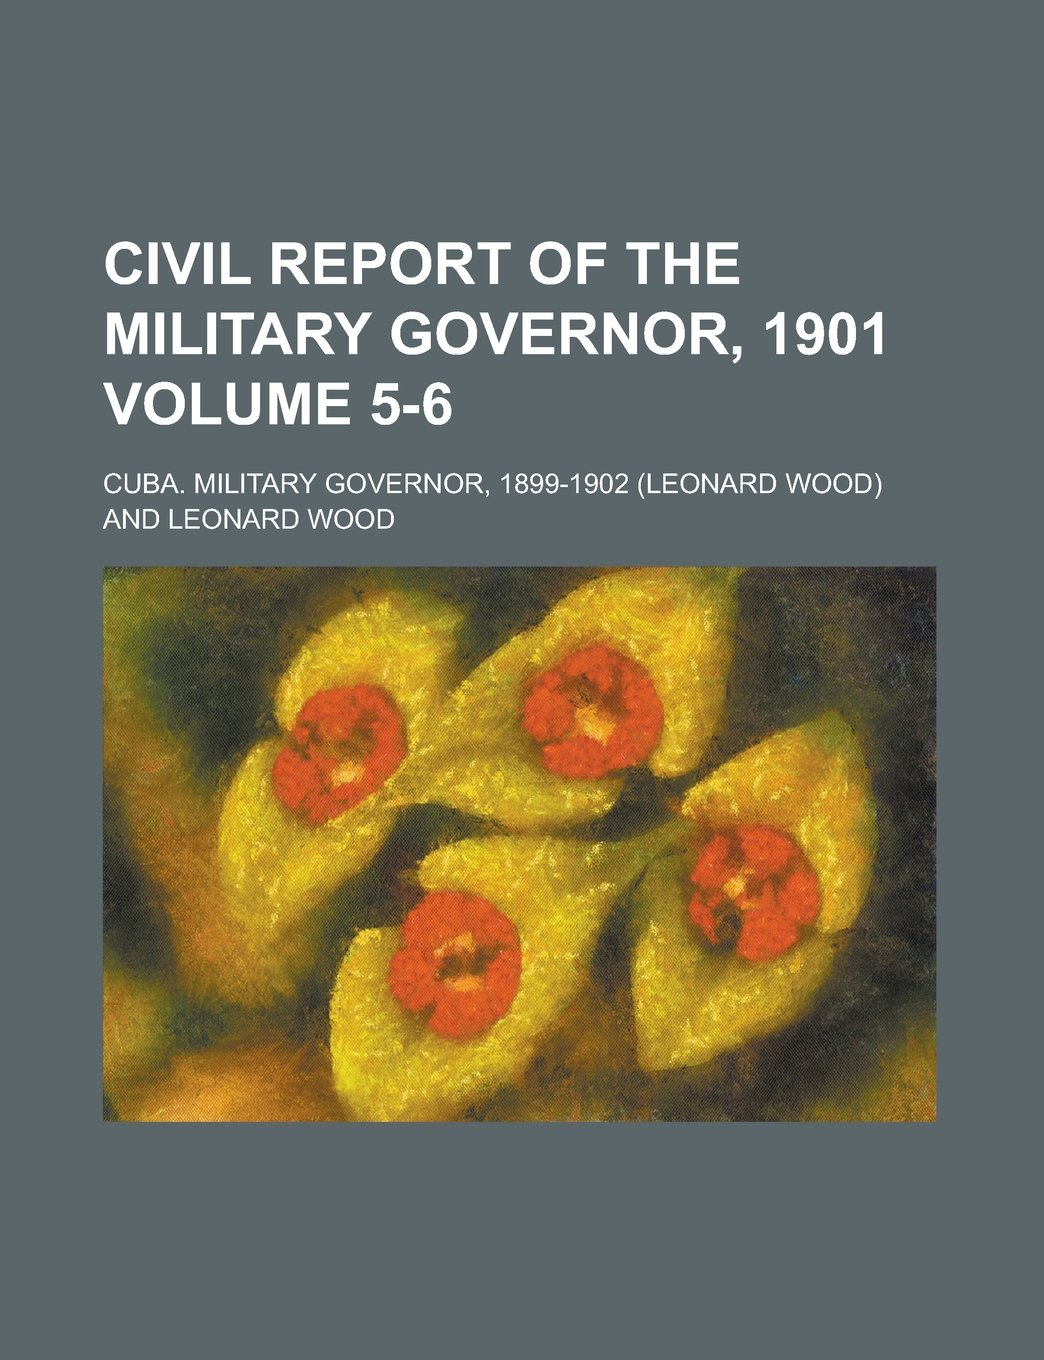 Civil report of the Military Governor, 1901 Volume 5-6: Cuba. Military Governor: 9781230193120: Amazon.com: Books